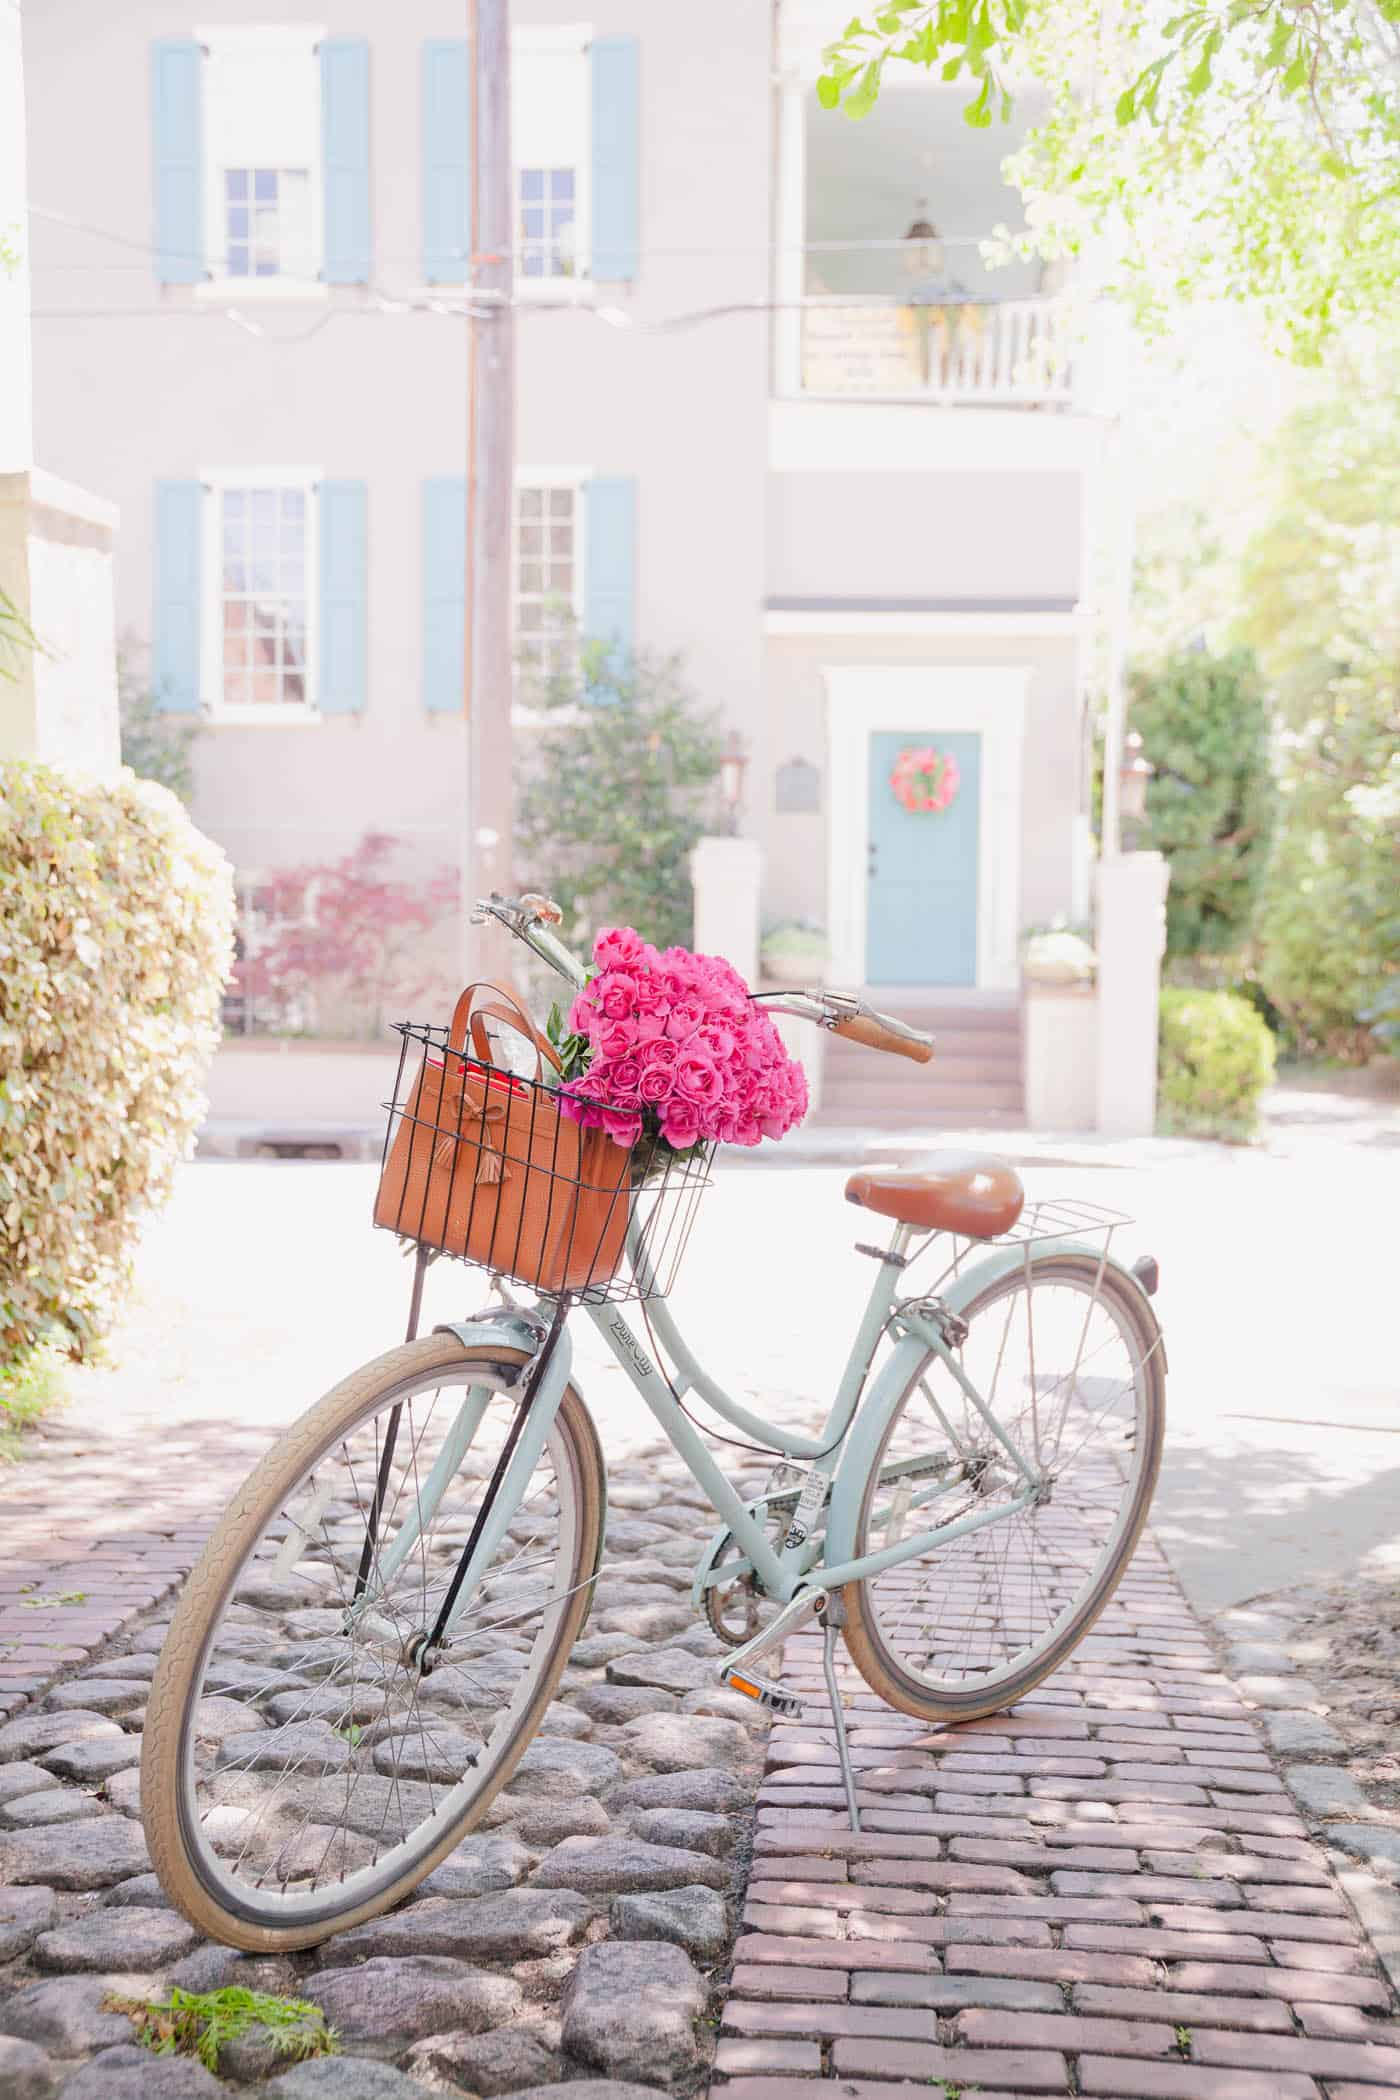 Charleston, things to do in Charleston, the best places to eat in Charleston - pastel bike with flowers in the basket in charleston on cobblestone